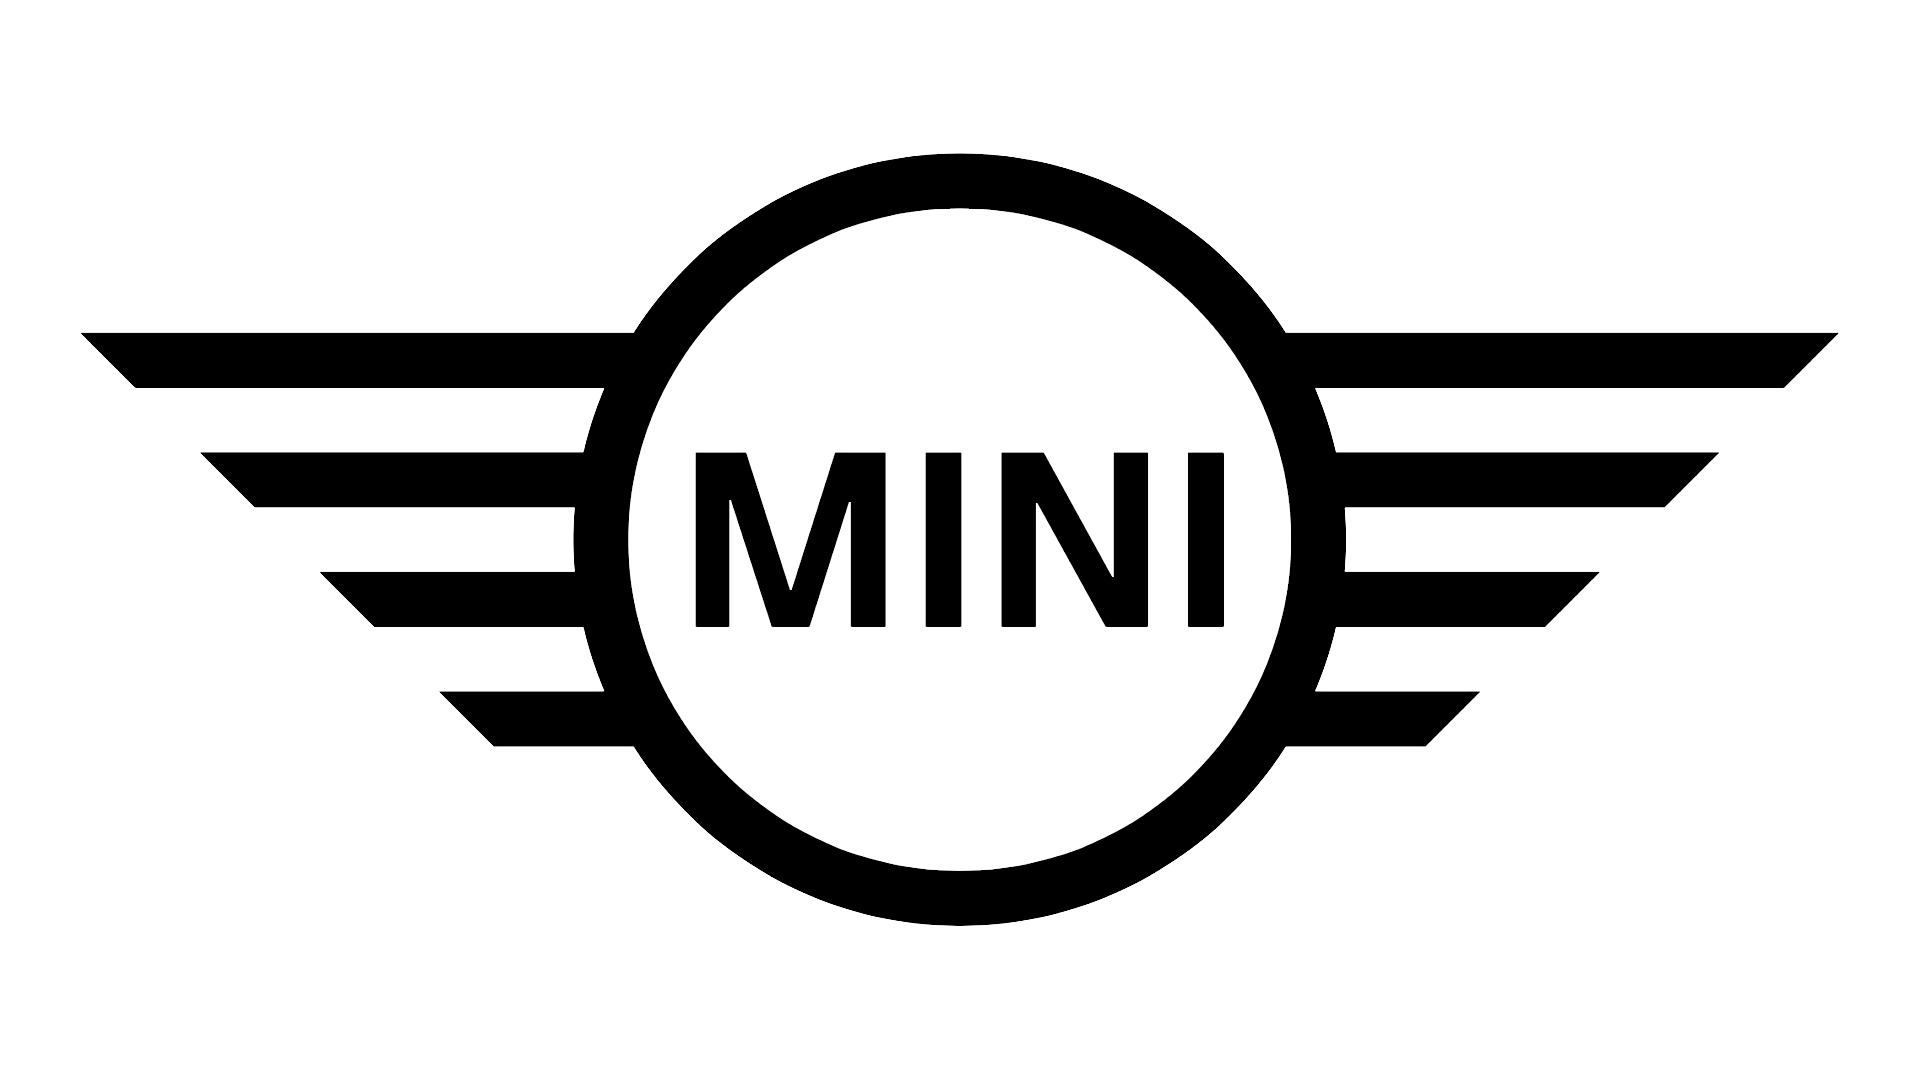 Mini Logo, HD Png, Meaning, Information.